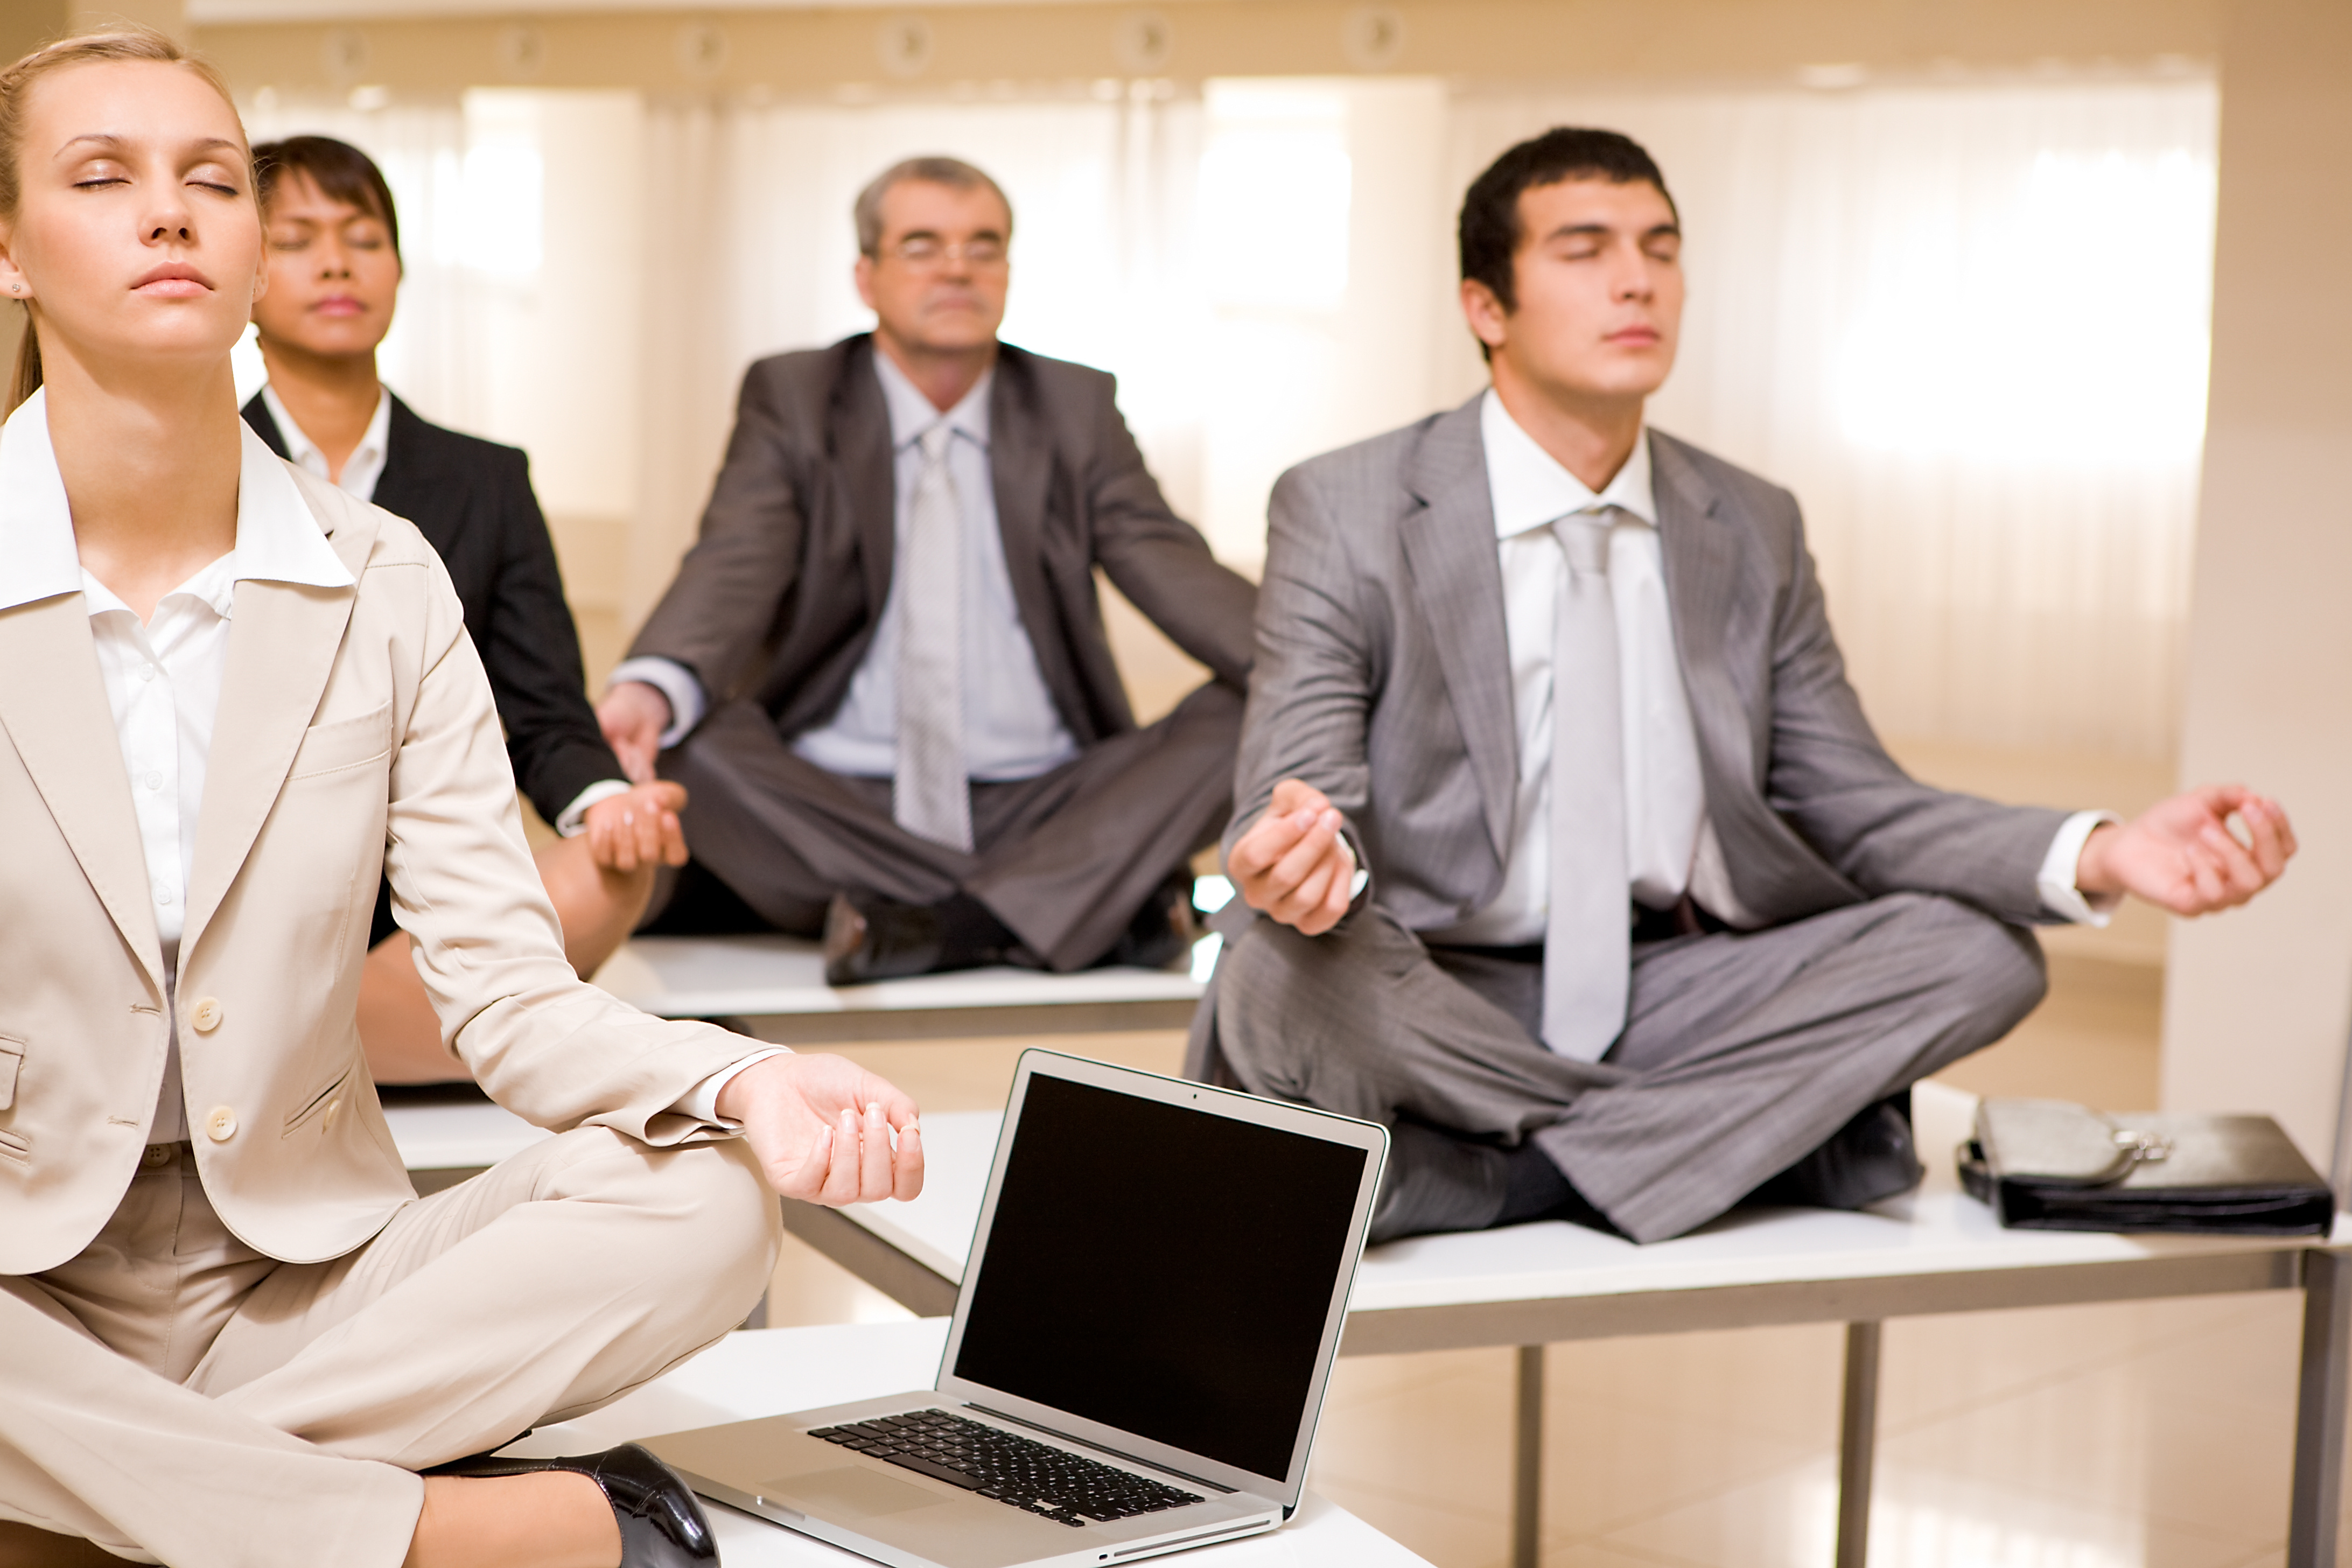 Portrait of meditating business people sitting on desks with their legs crossed in office